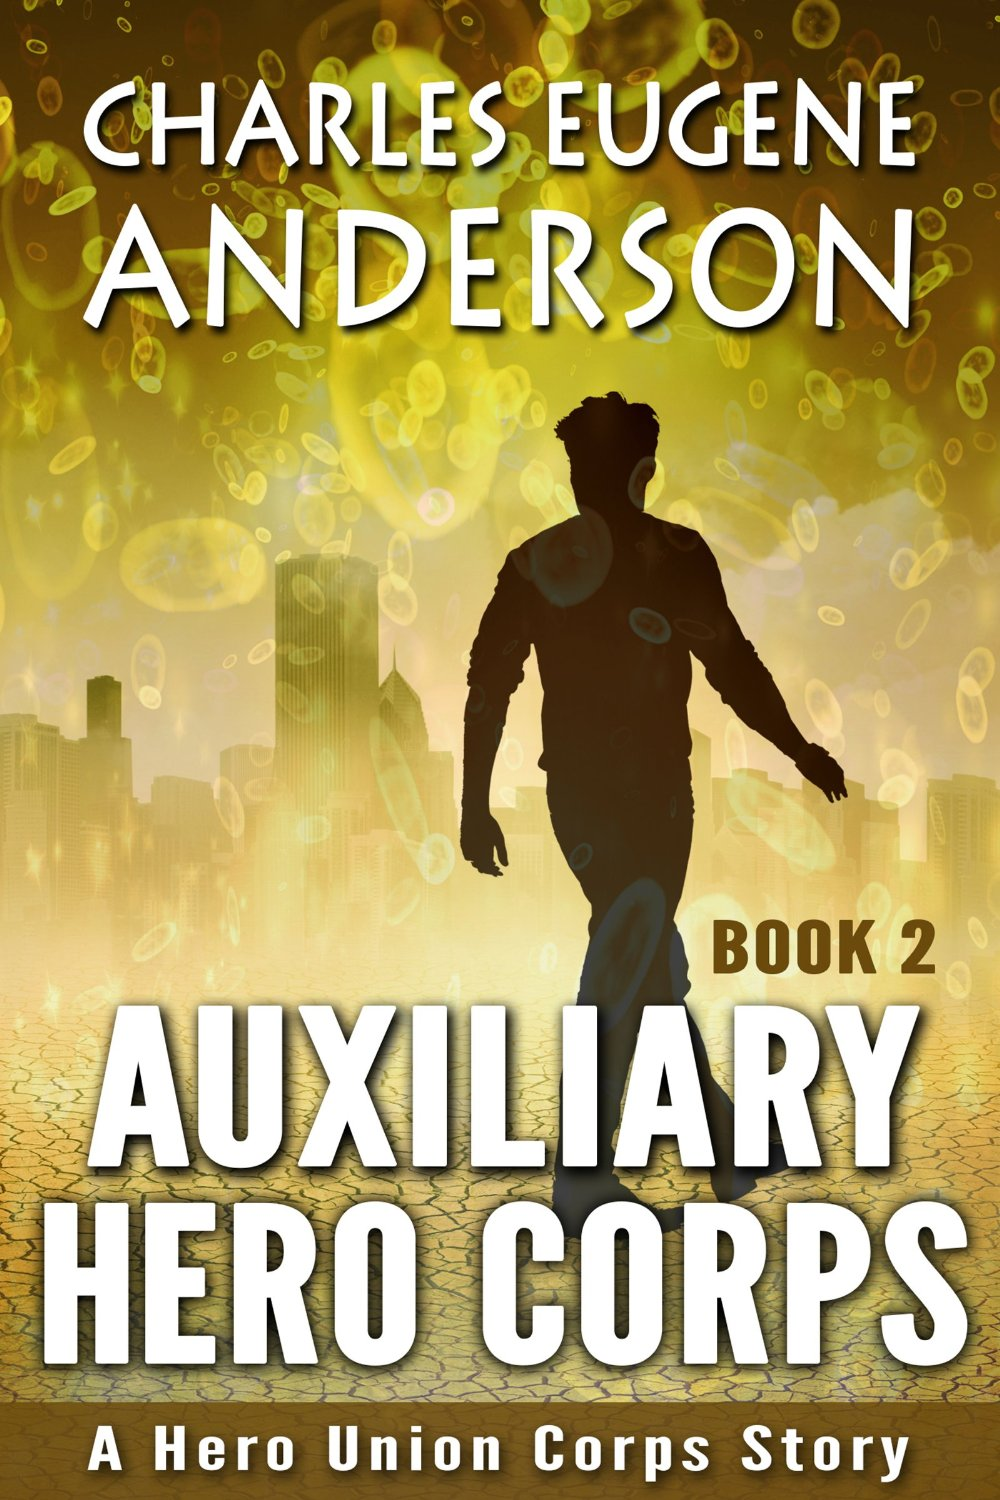 Auxiliary Hero Corps Book 2 by Charles Eugene Anderson